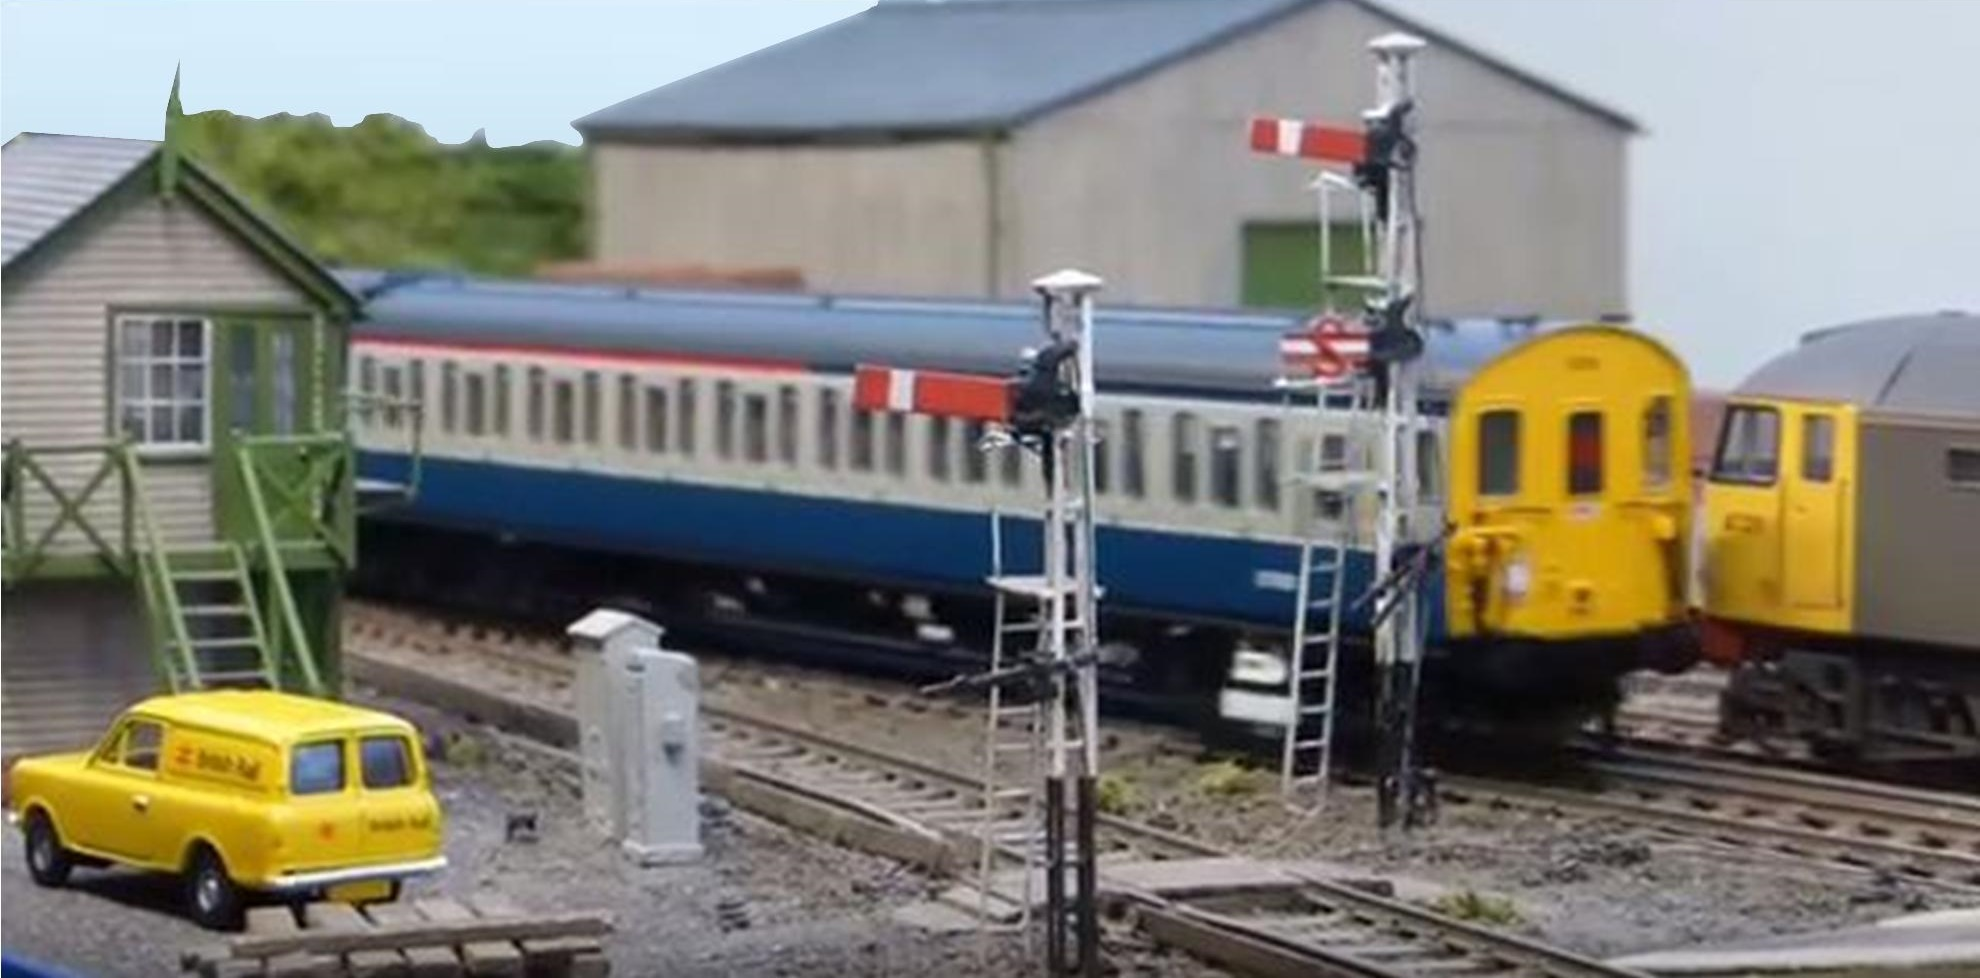 railway scenery for scale model trains